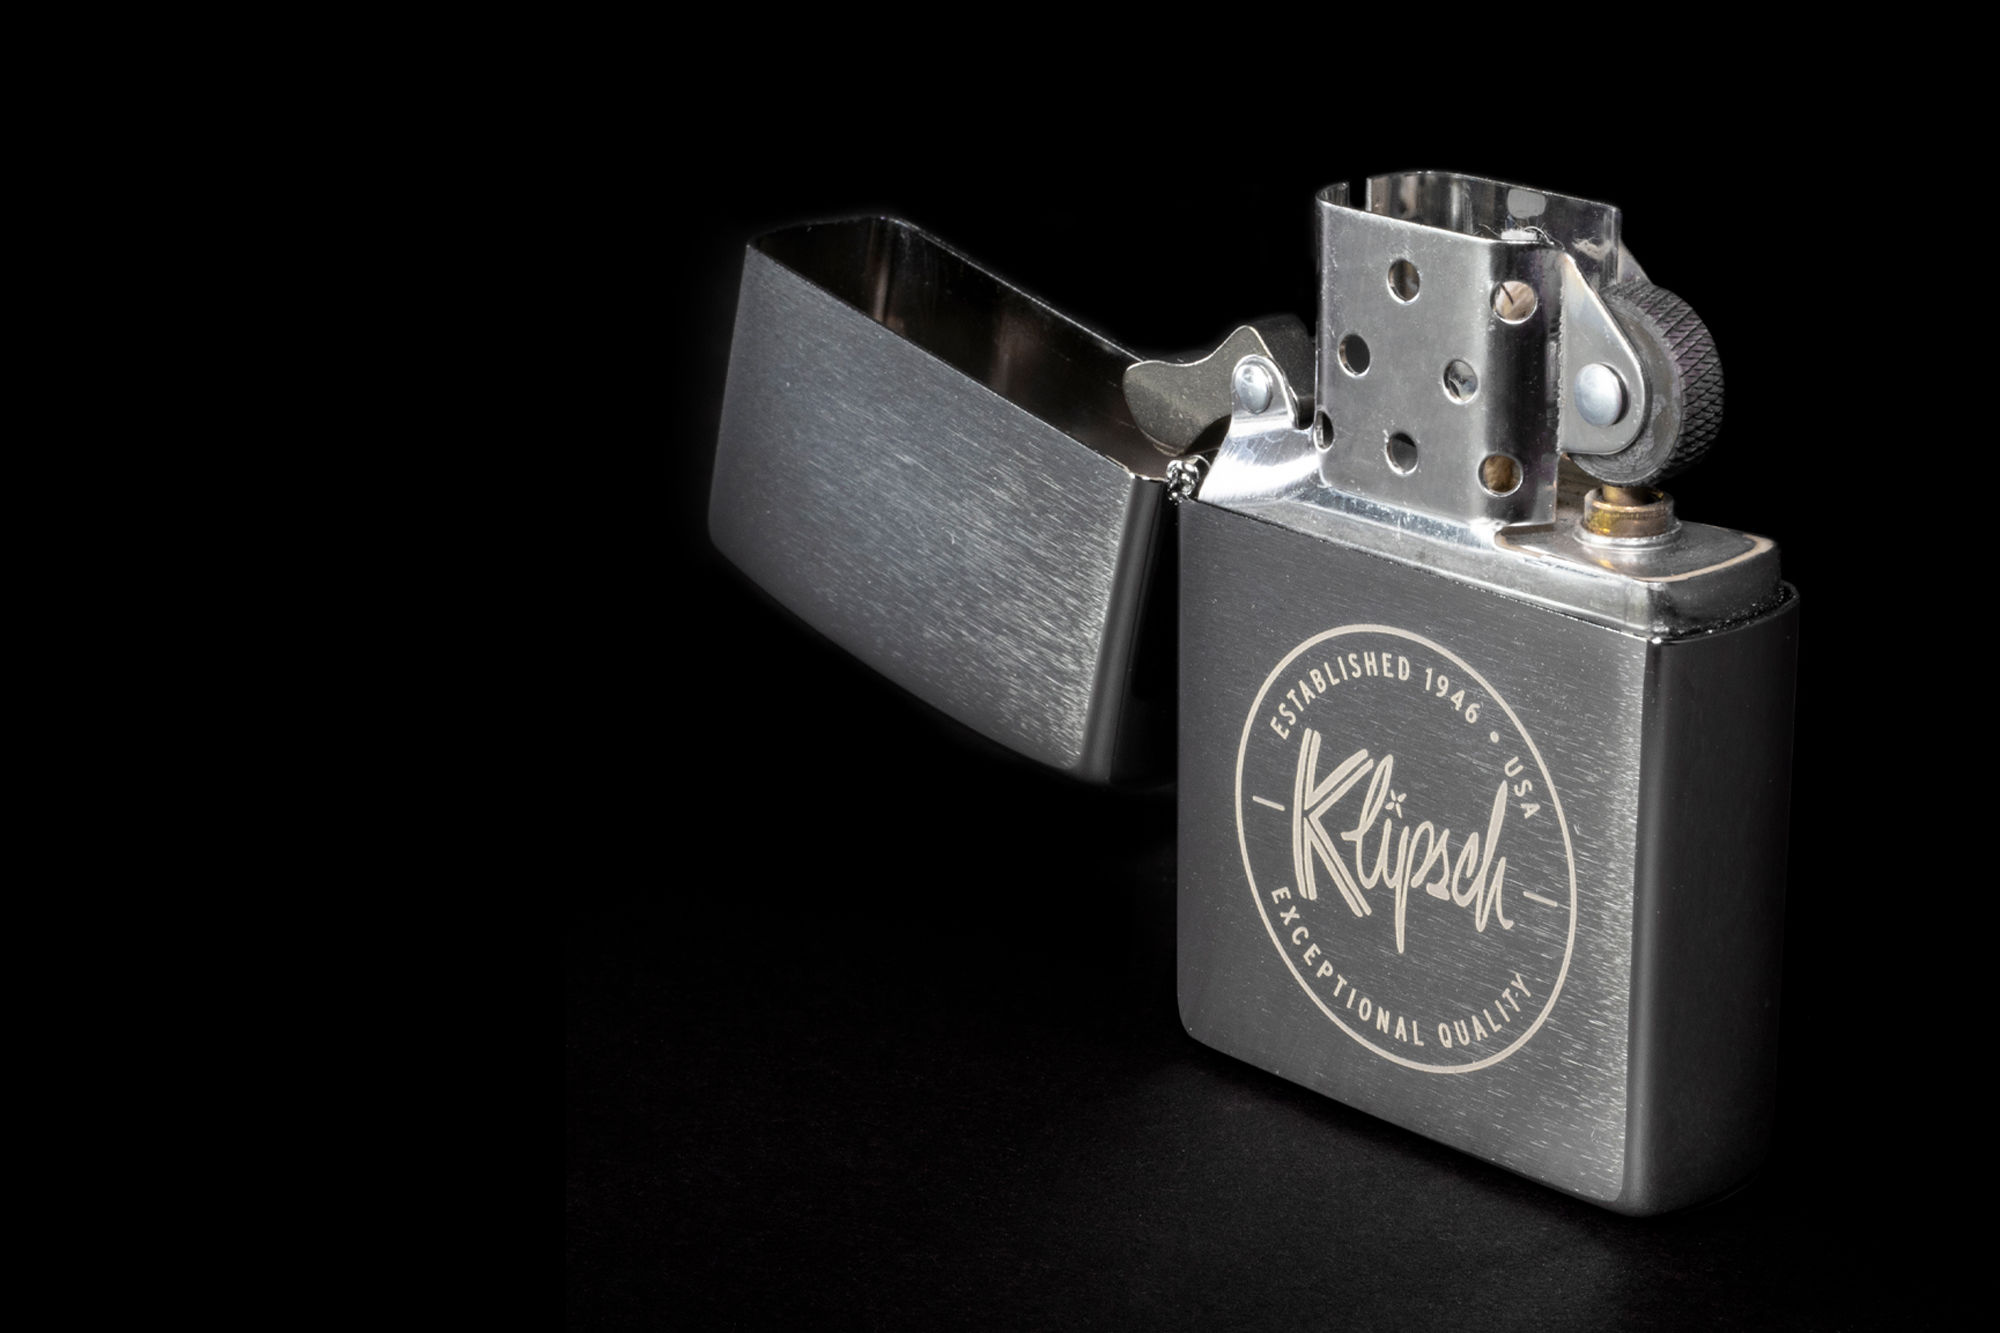 Opened Klipsch branded lighter